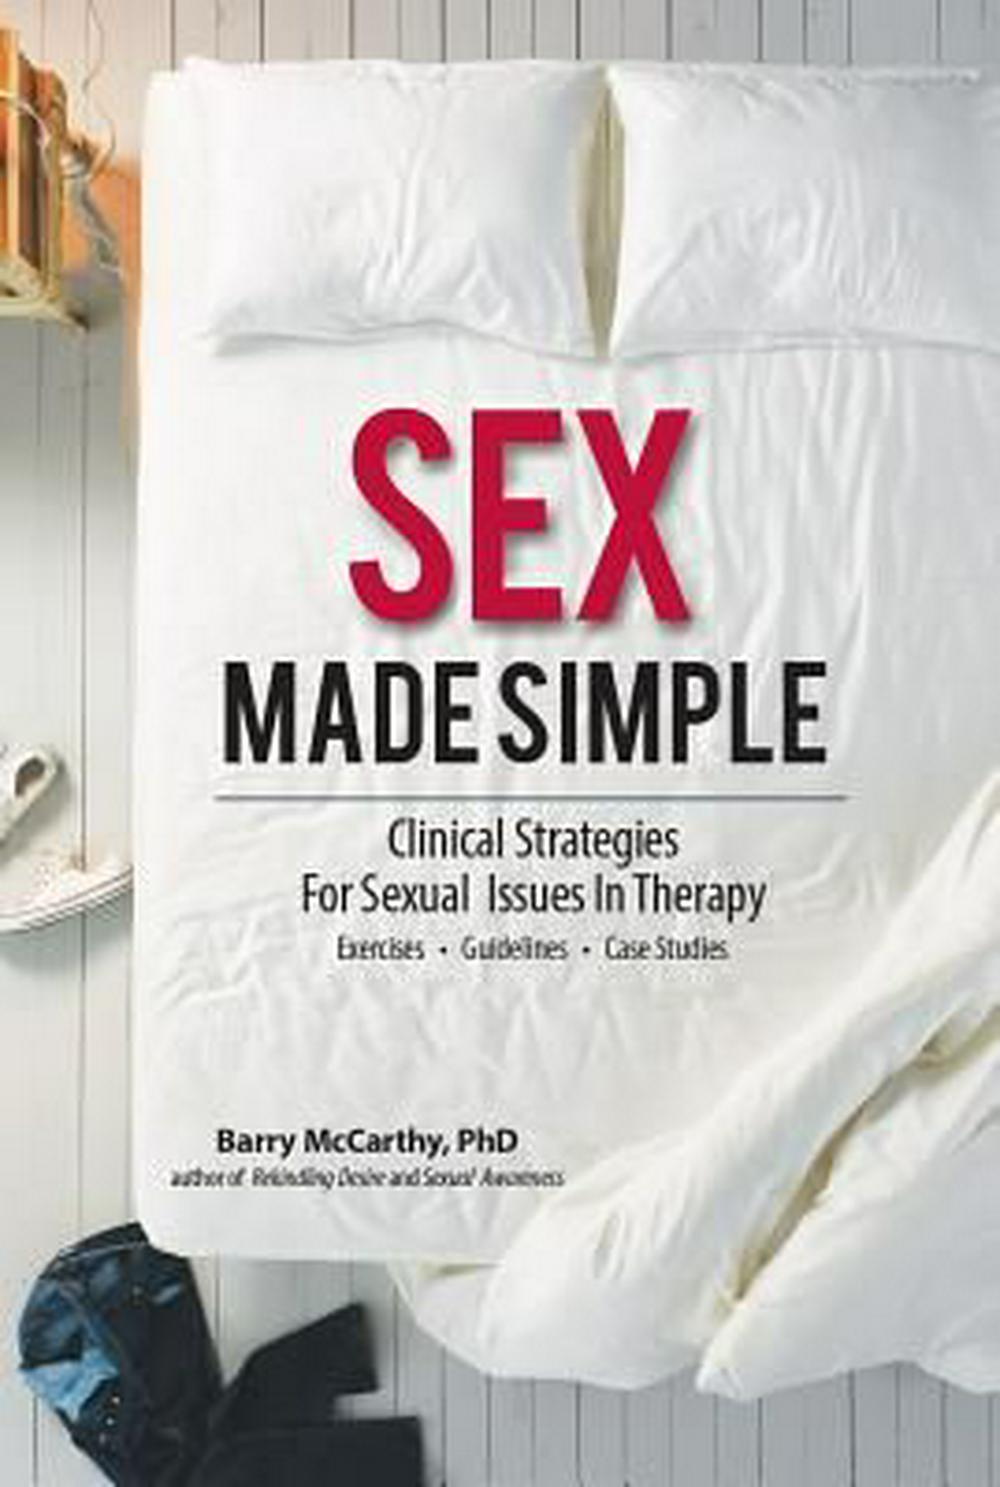 Sex Made Simple: Clinical Strategies for Sexual Issues in Therapy